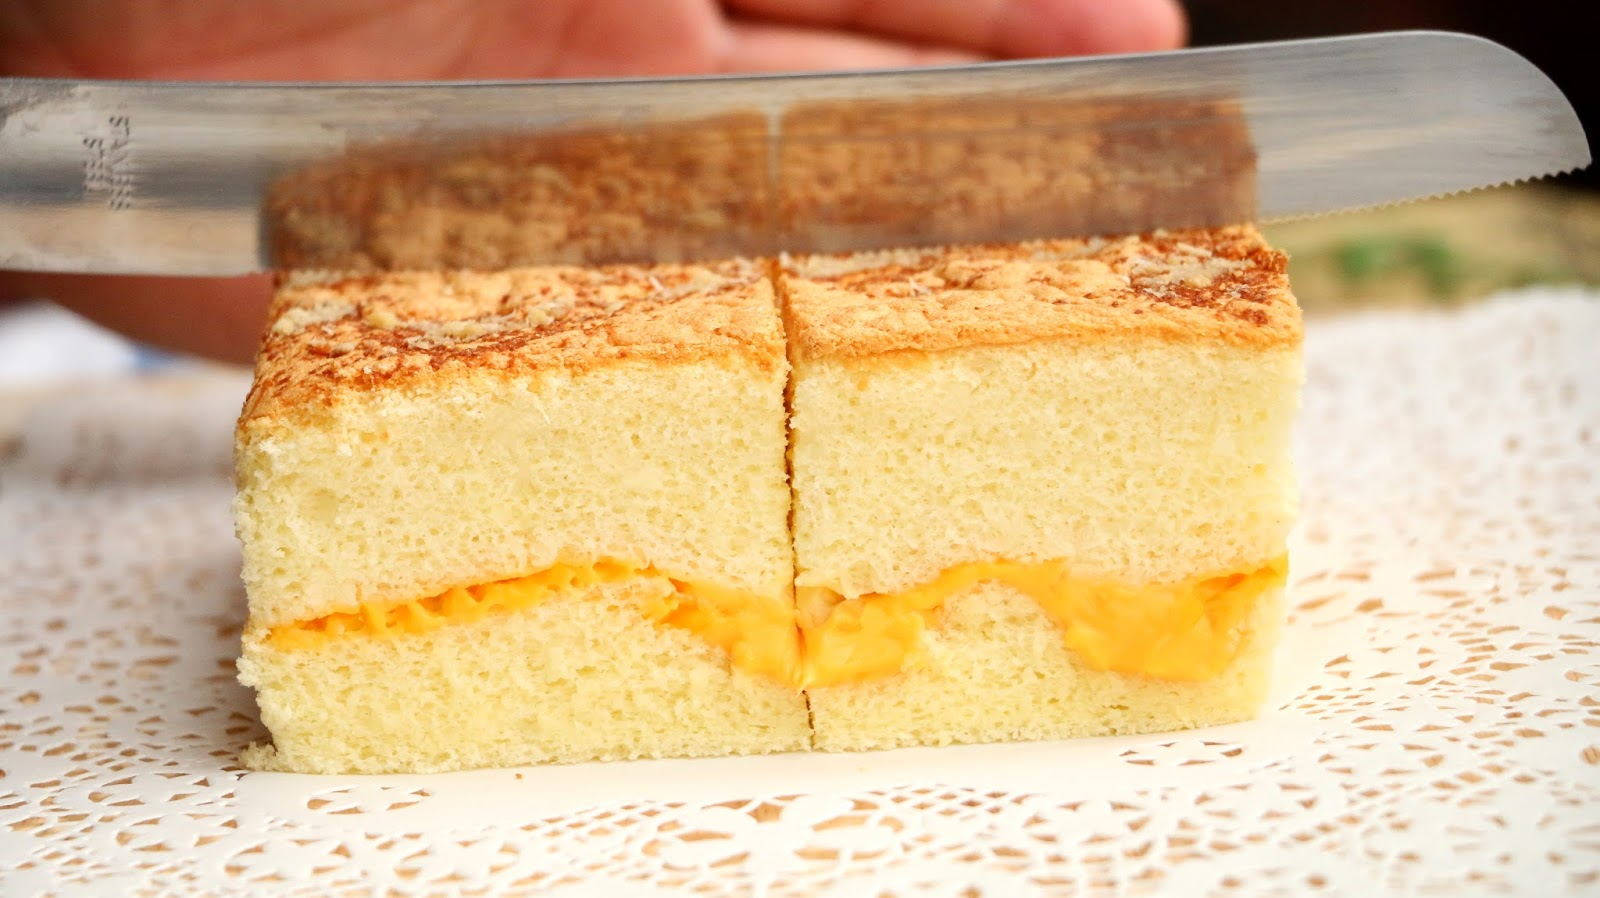 Japanese Sponge Cake Recipe Youtube: Kasutera Cake Recipe